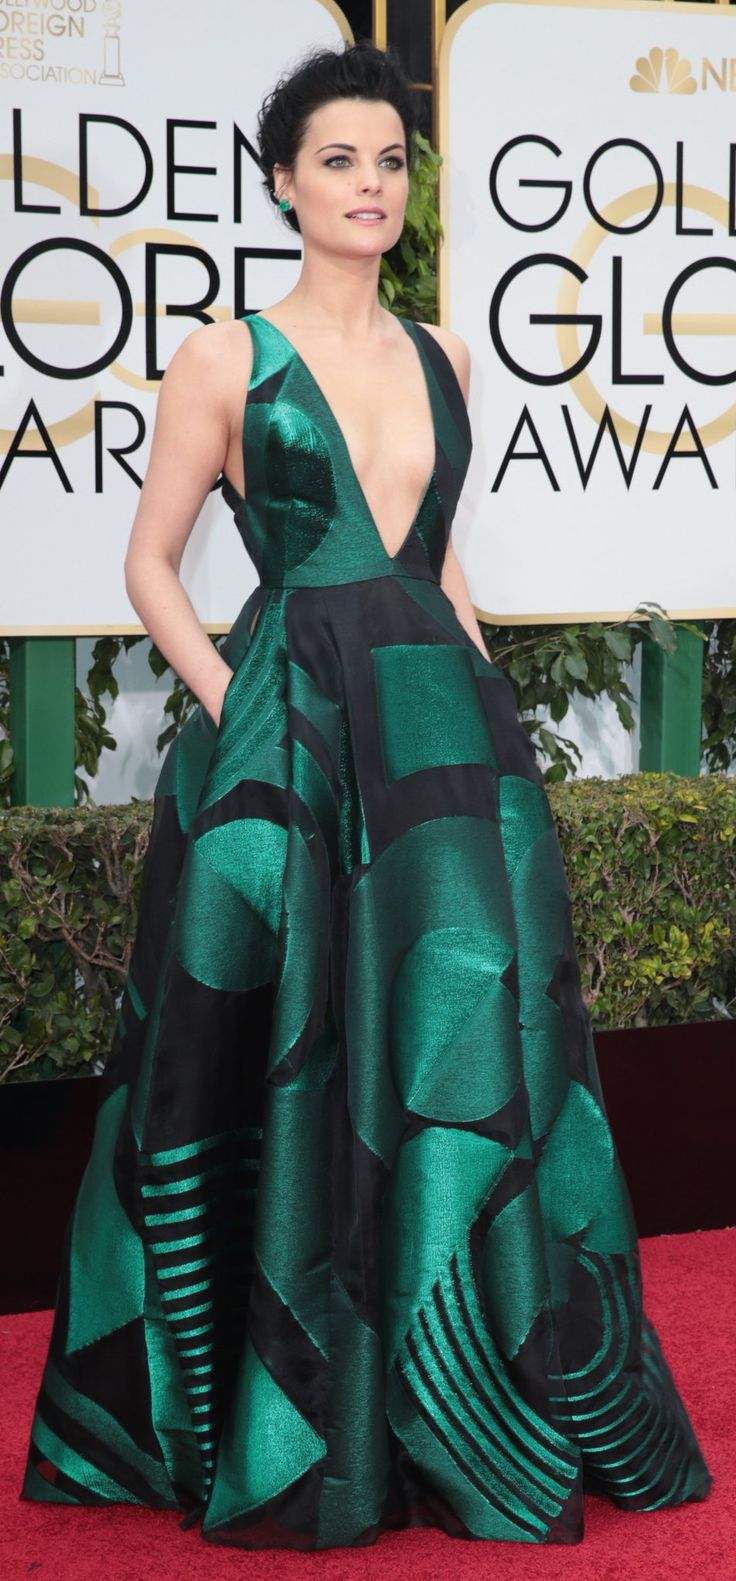 Jaimie Alexander in Genny at the Golden Globes (Photo: Monica Almeida/The New York Times)